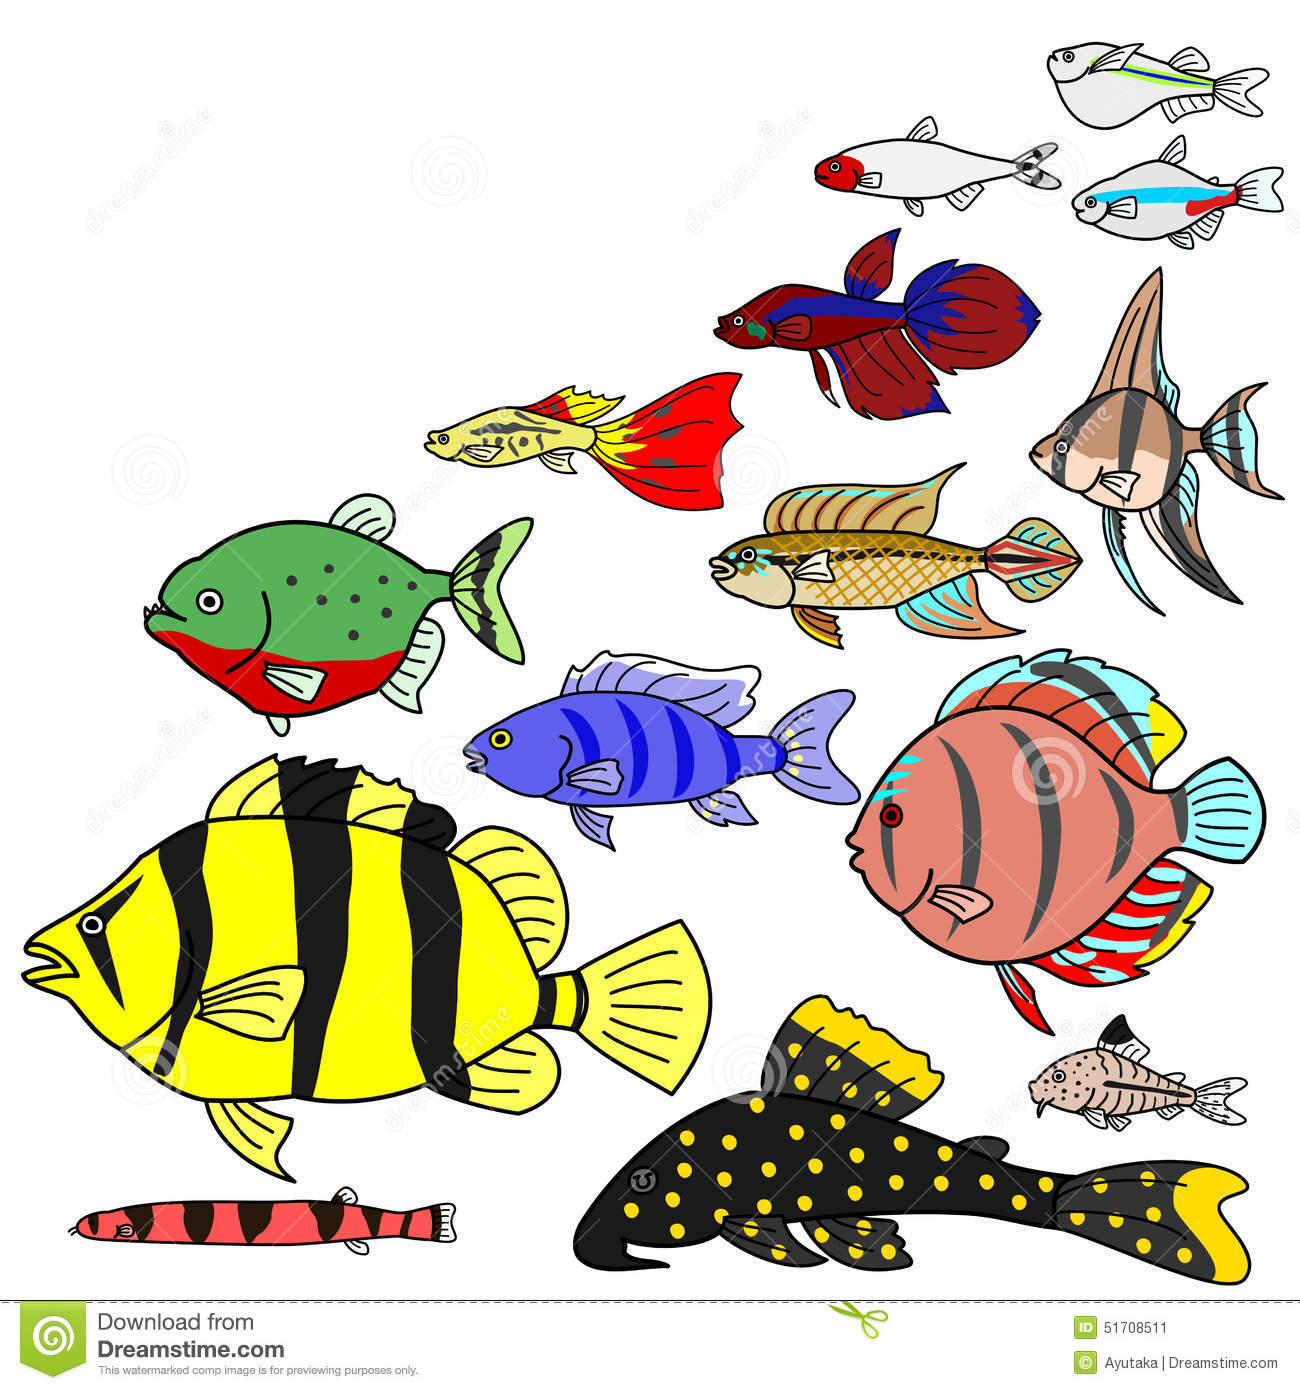 Freshwater fish kingdom - Freshwater Tropical Fish Species Stock Image